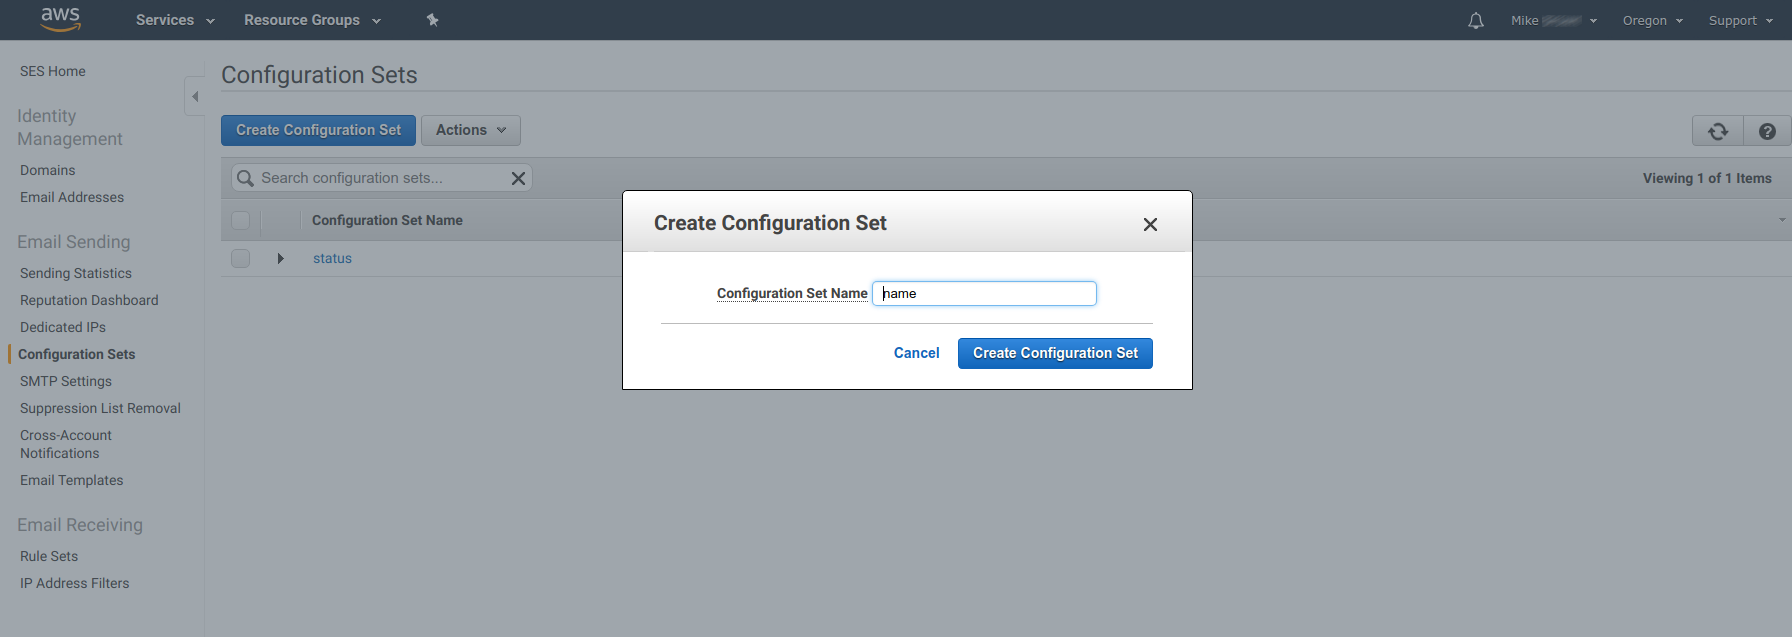 Amazon SES - Adding new Configuration Set